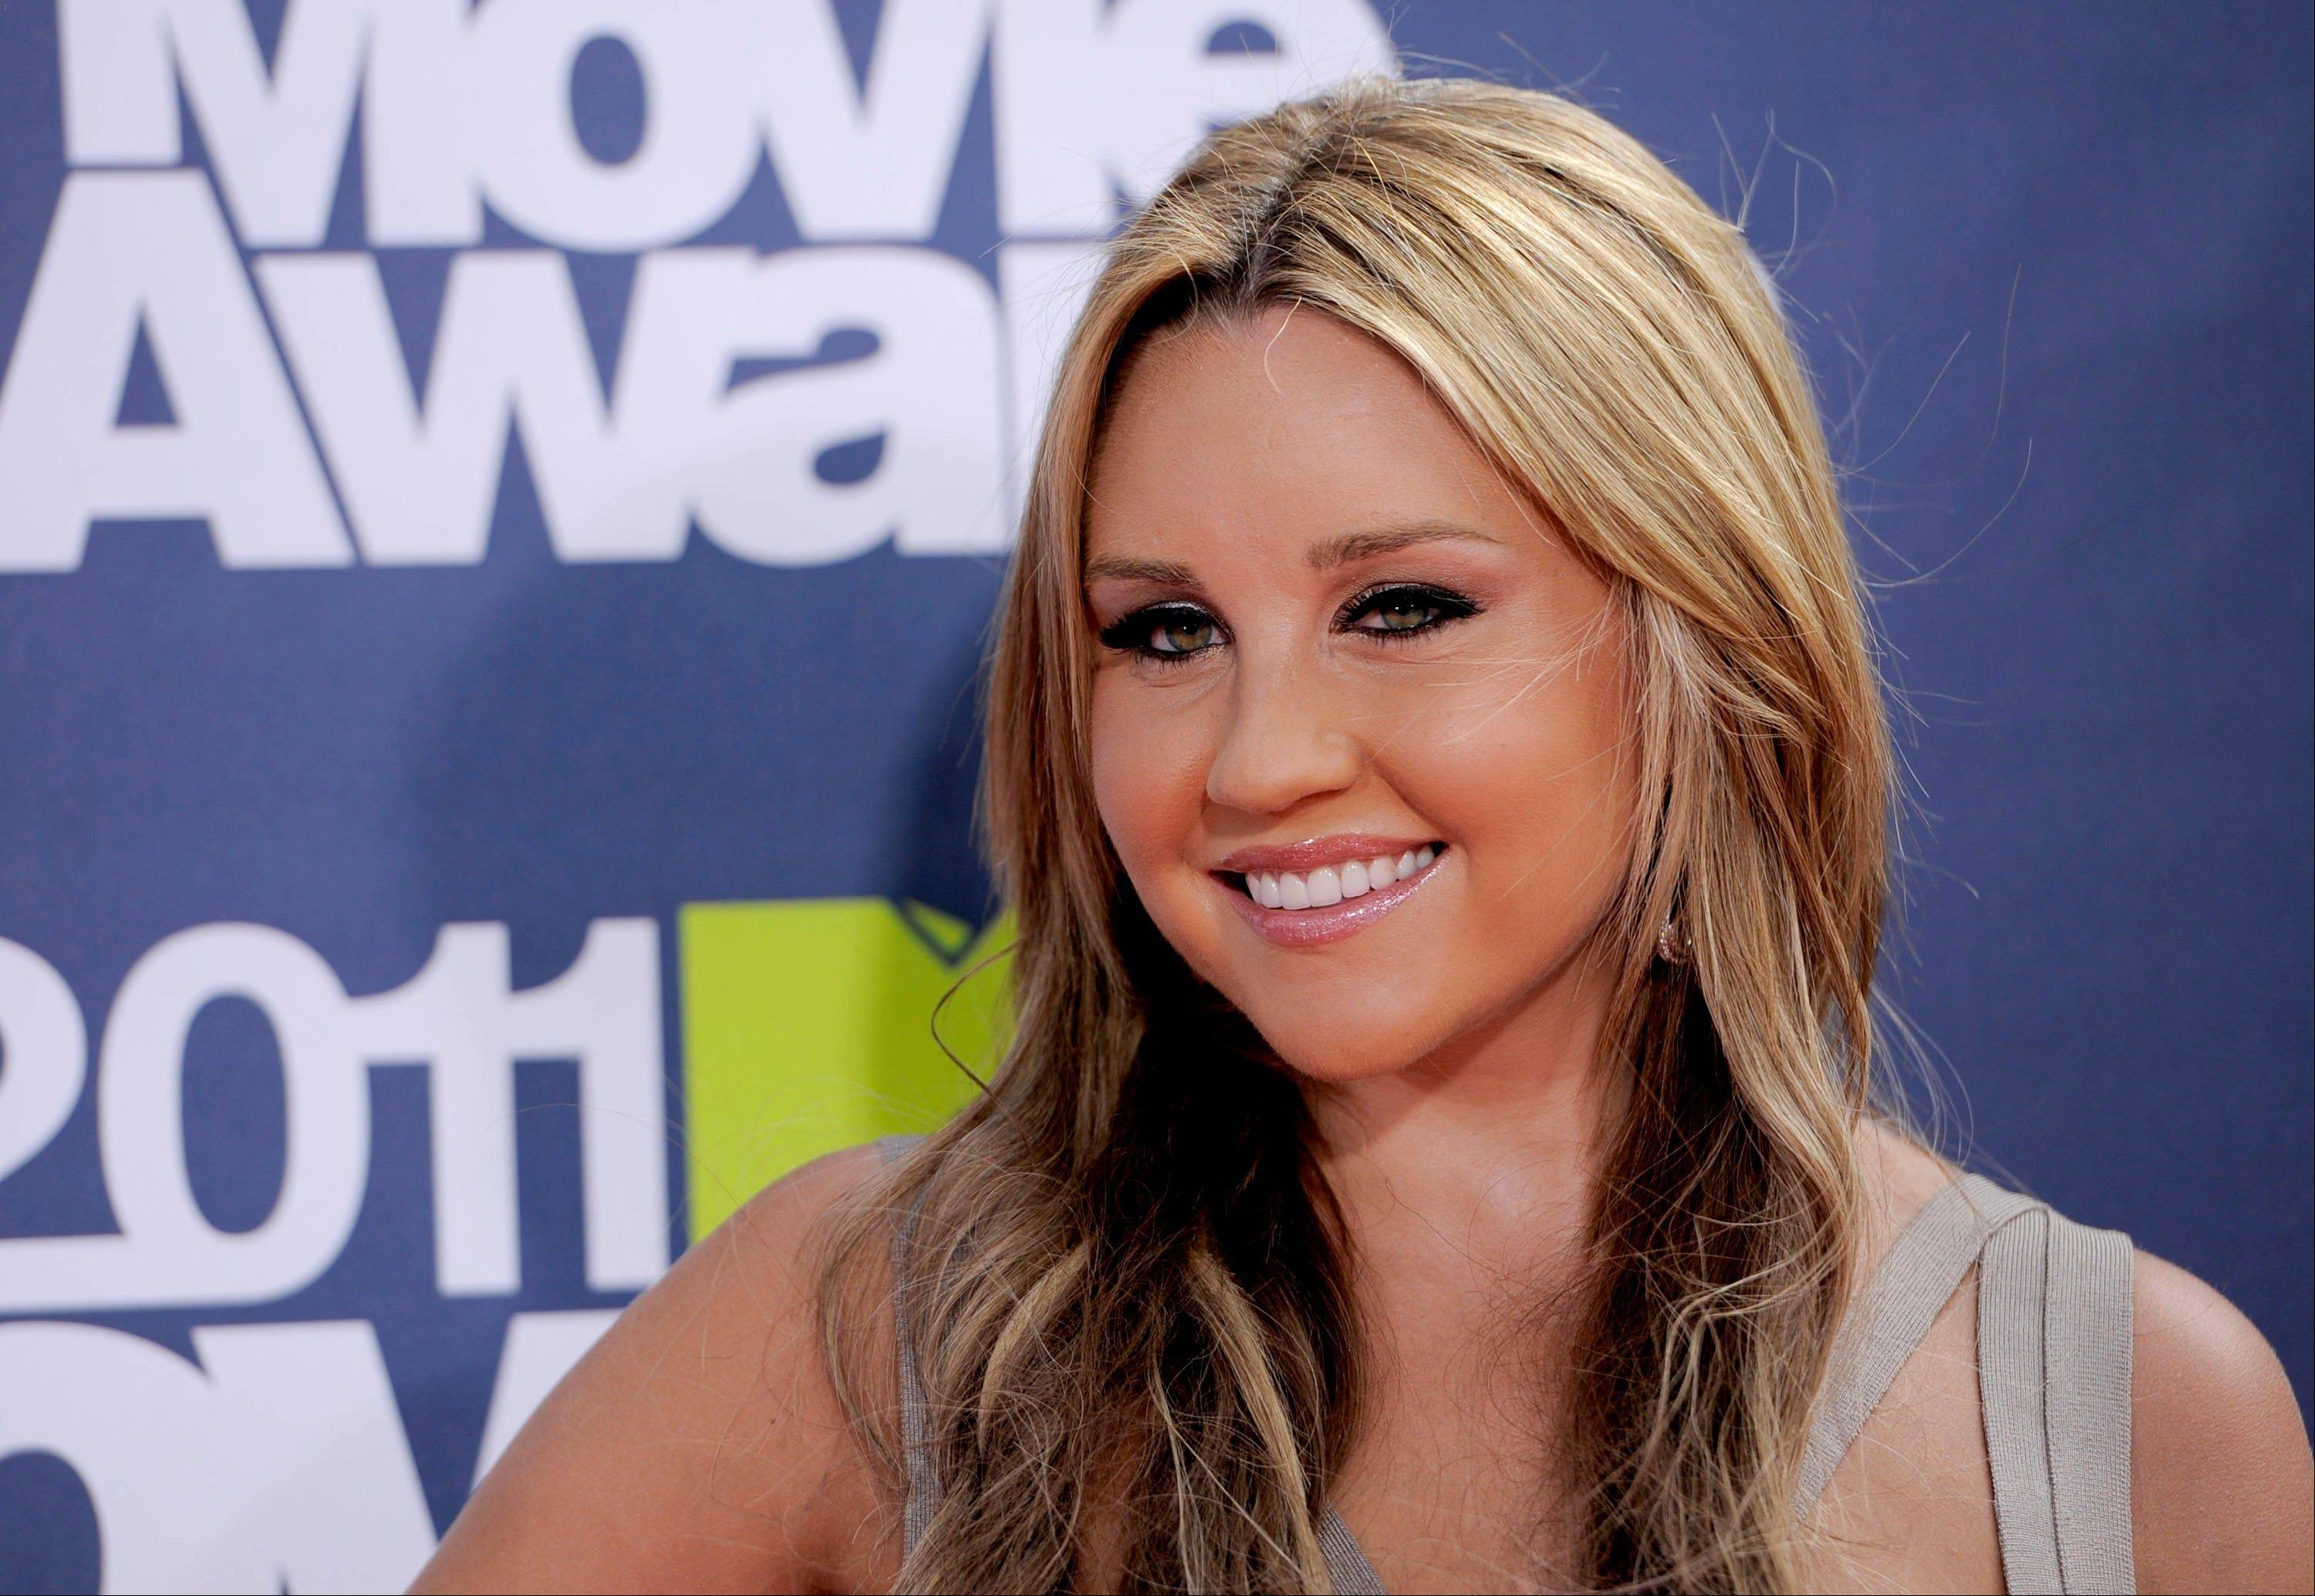 A New York lawyer for troubled star Amanda Bynes says he thinks her bong-throwing case will be resolved soon. The actress did not appear in court Thursday, Sept. 26. She remains in a psychiatric hospital in California. She was charged earlier this year with reckless endangerment and marijuana possession. Police said they saw her heave a bong from her 36th floor Manhattan apartment.